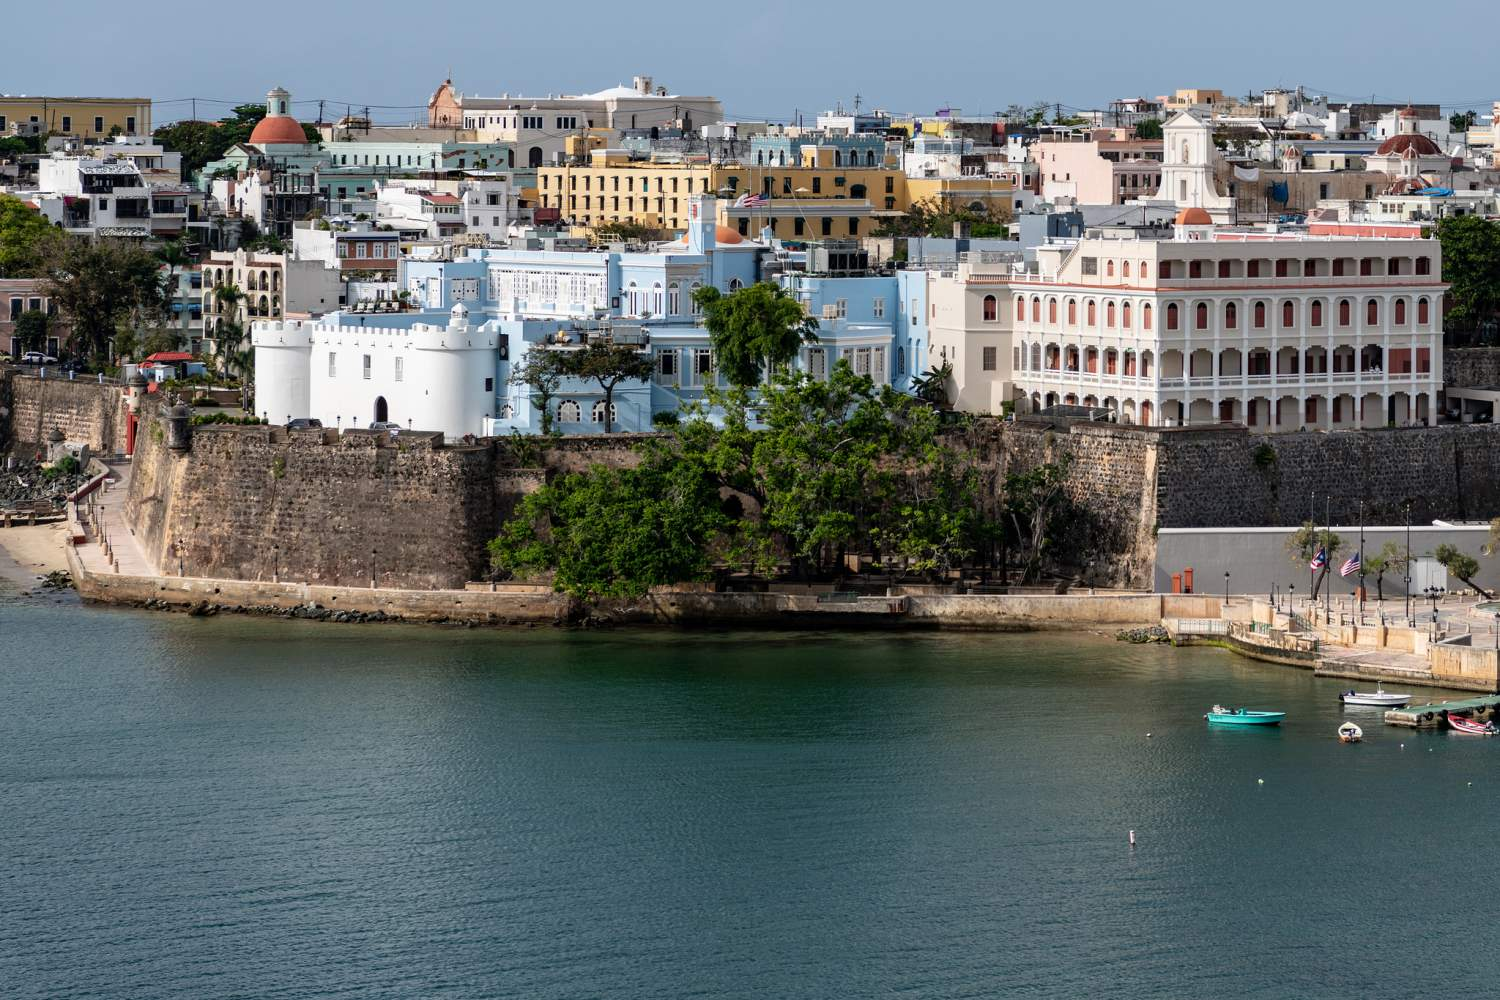 City of San Juan, Puerto Rico